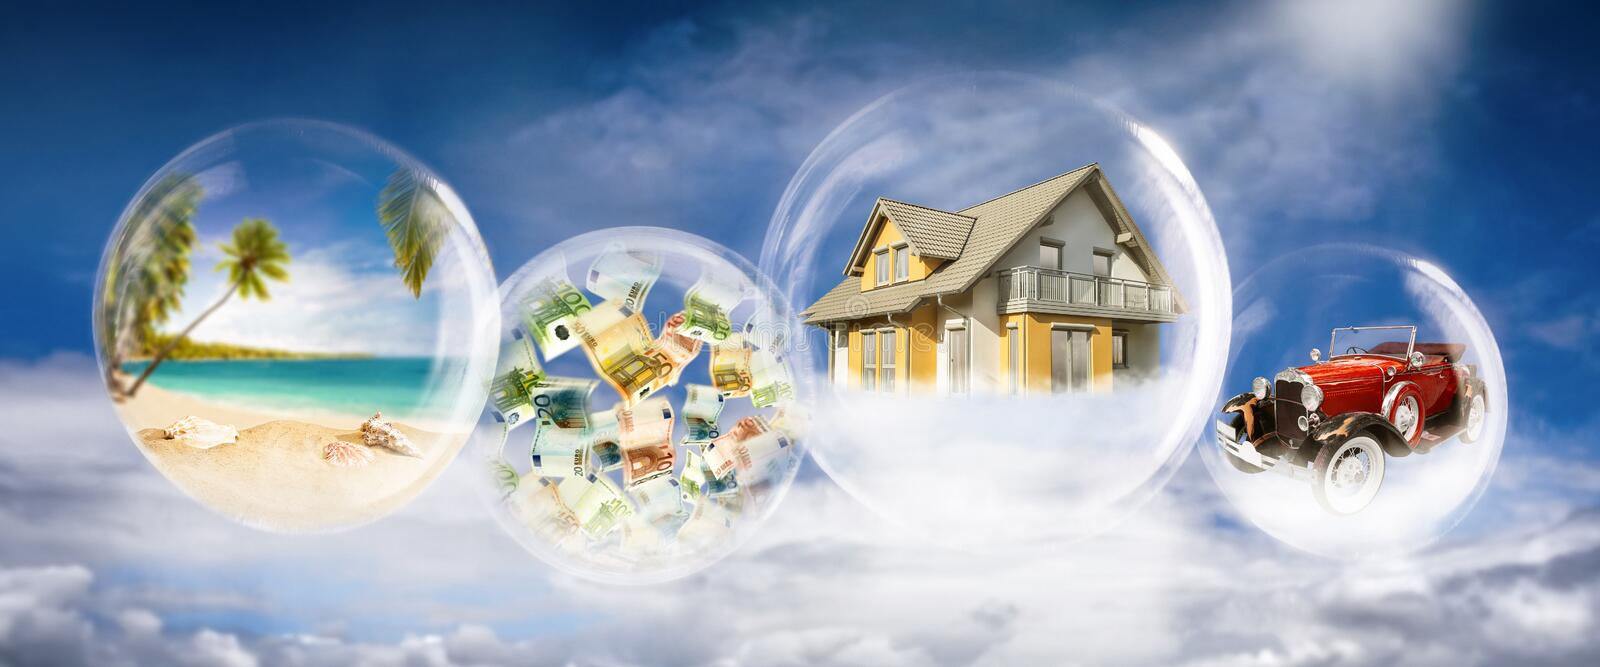 Dream of wealth, home, car and luxury travel. Soap bubbles with beach scene, banknotes, house and car royalty free stock photo